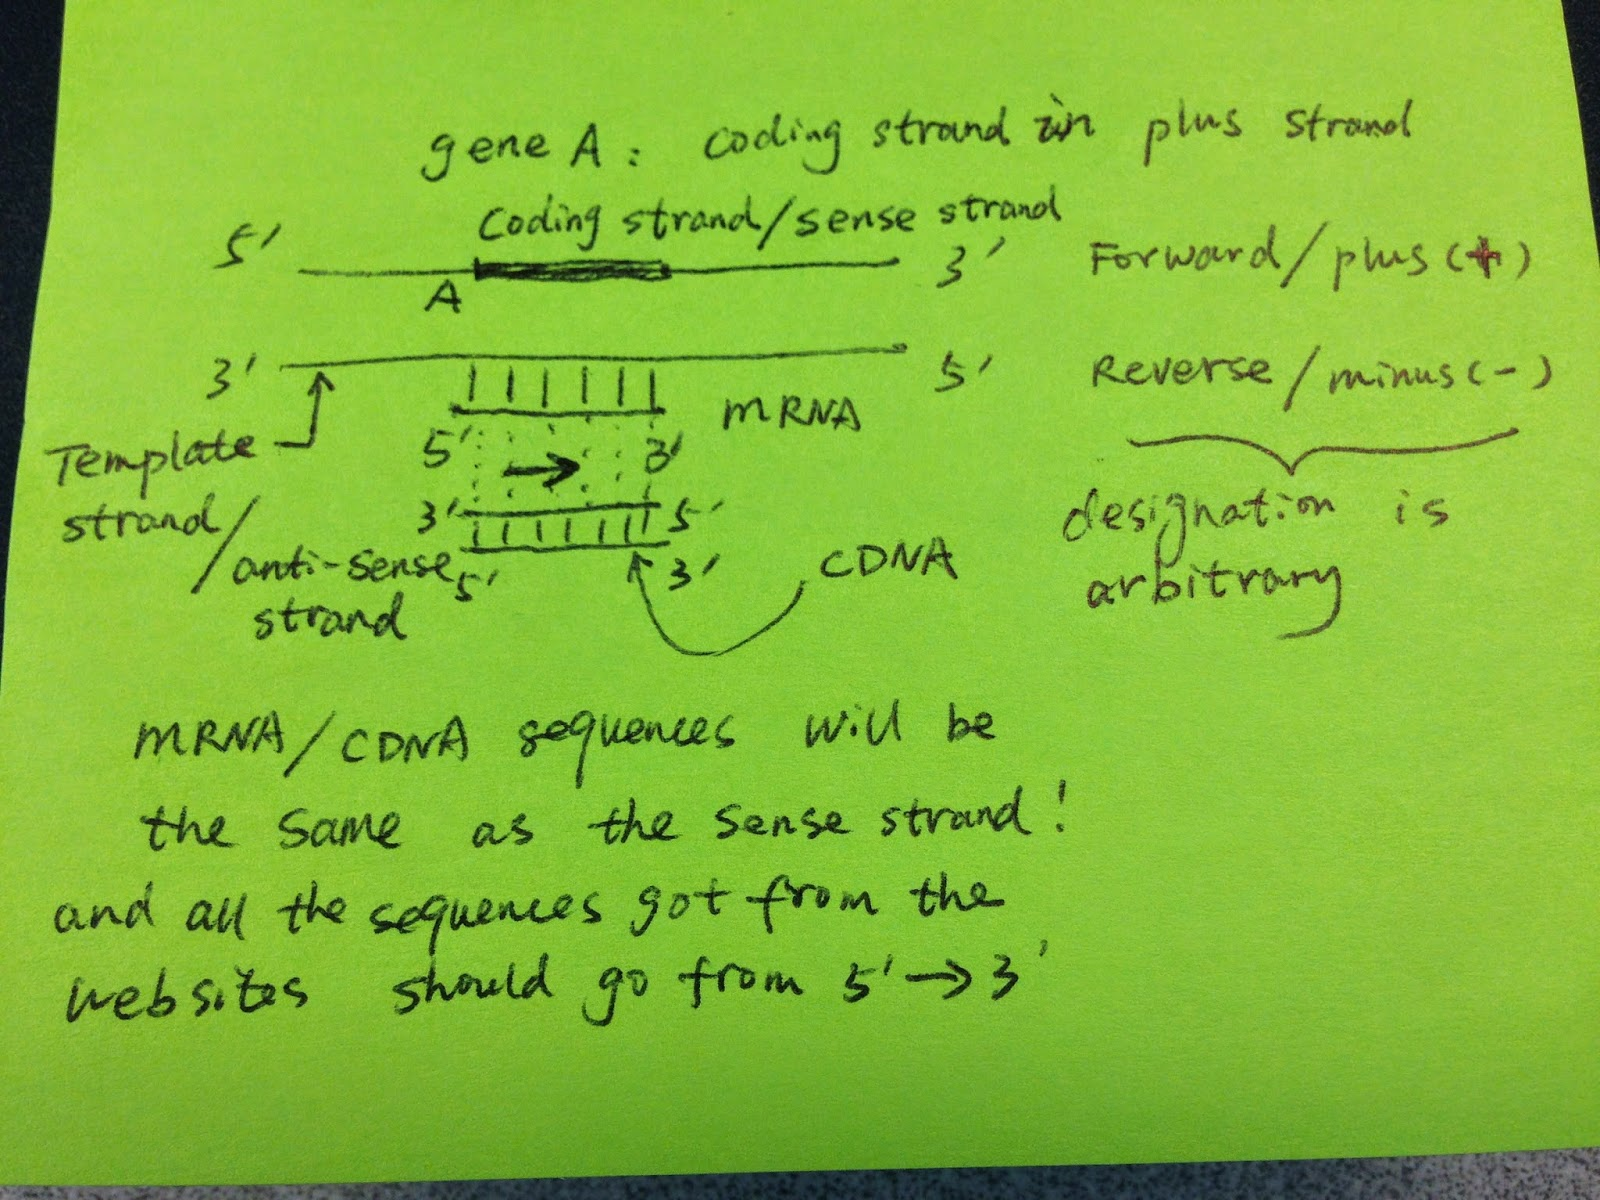 difference between template and coding strand - diving into genetics and genomics understanding the